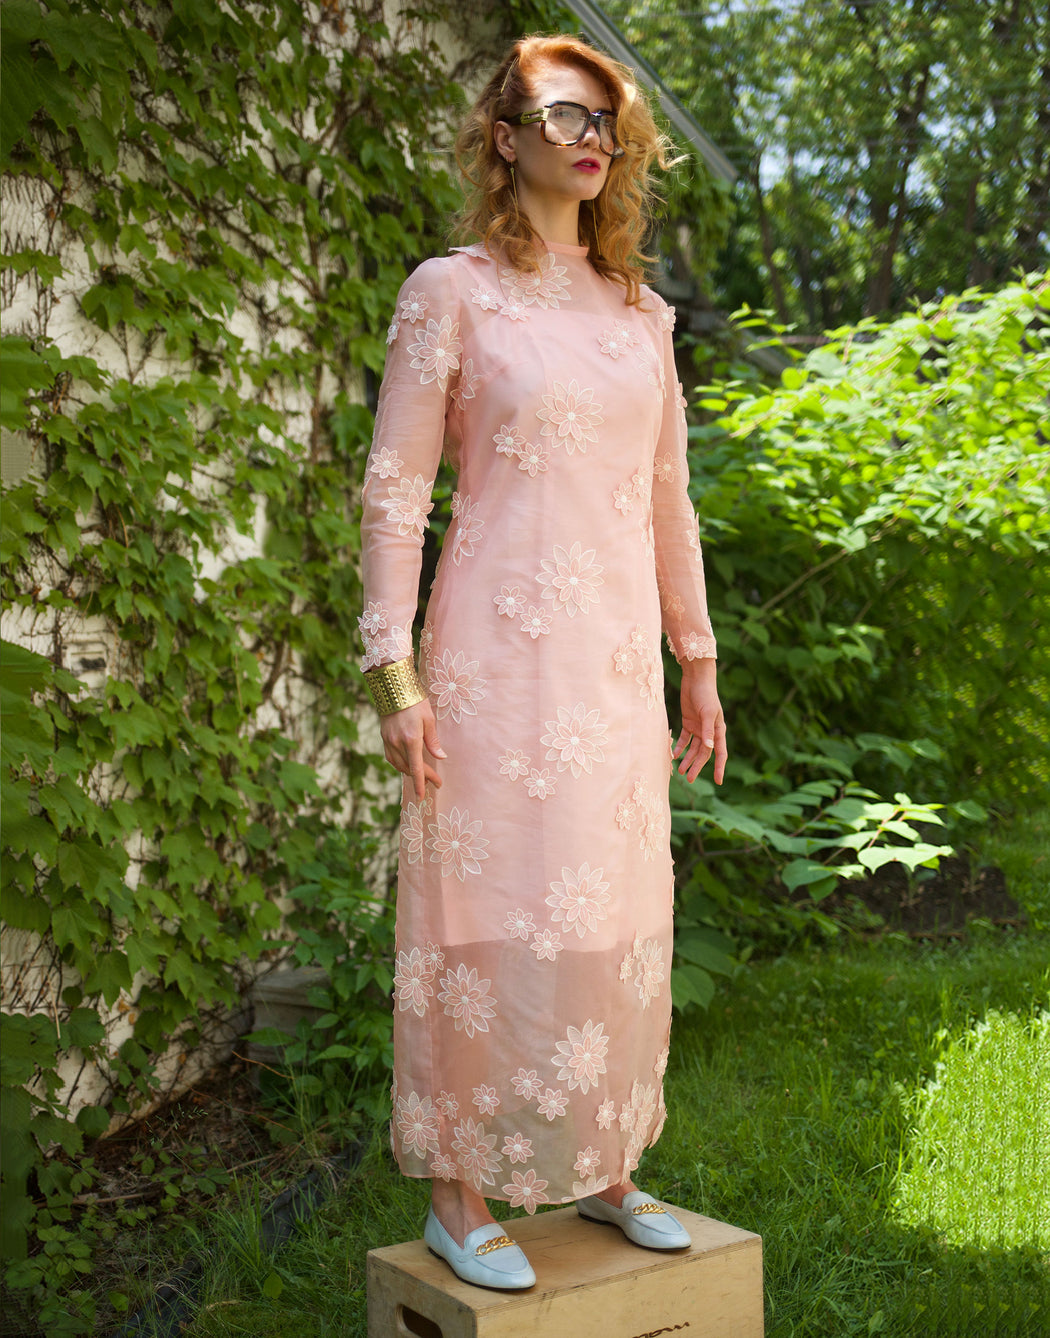 Queen Bee - Vintage Sheer Maxi Dress